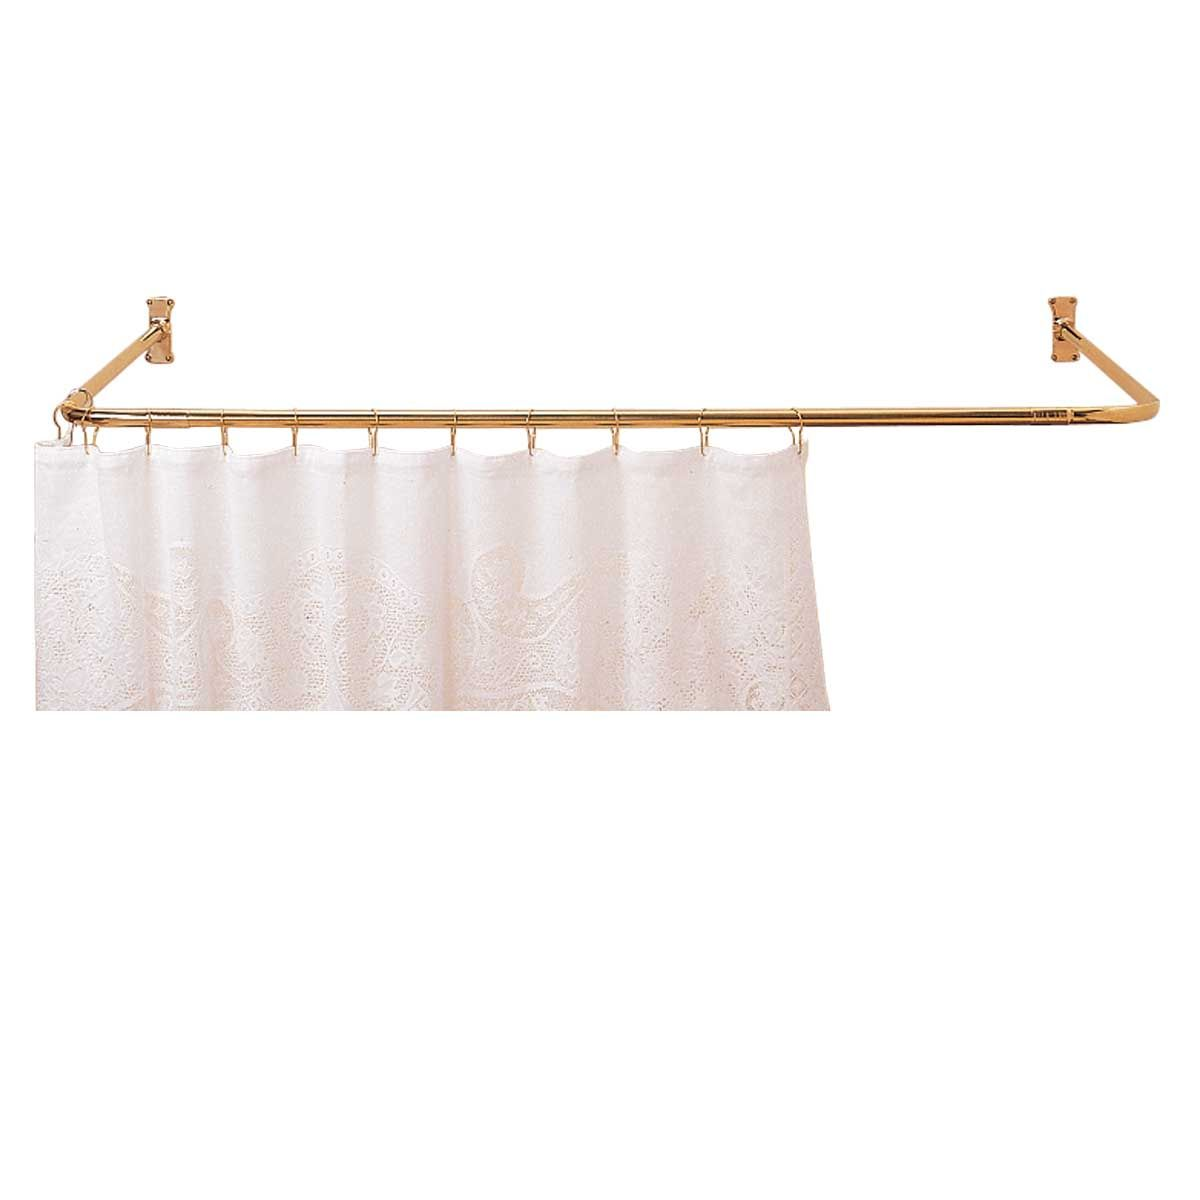 Shower Curtain Rod Bright Solid Brass 3 Sided Shower Curtain